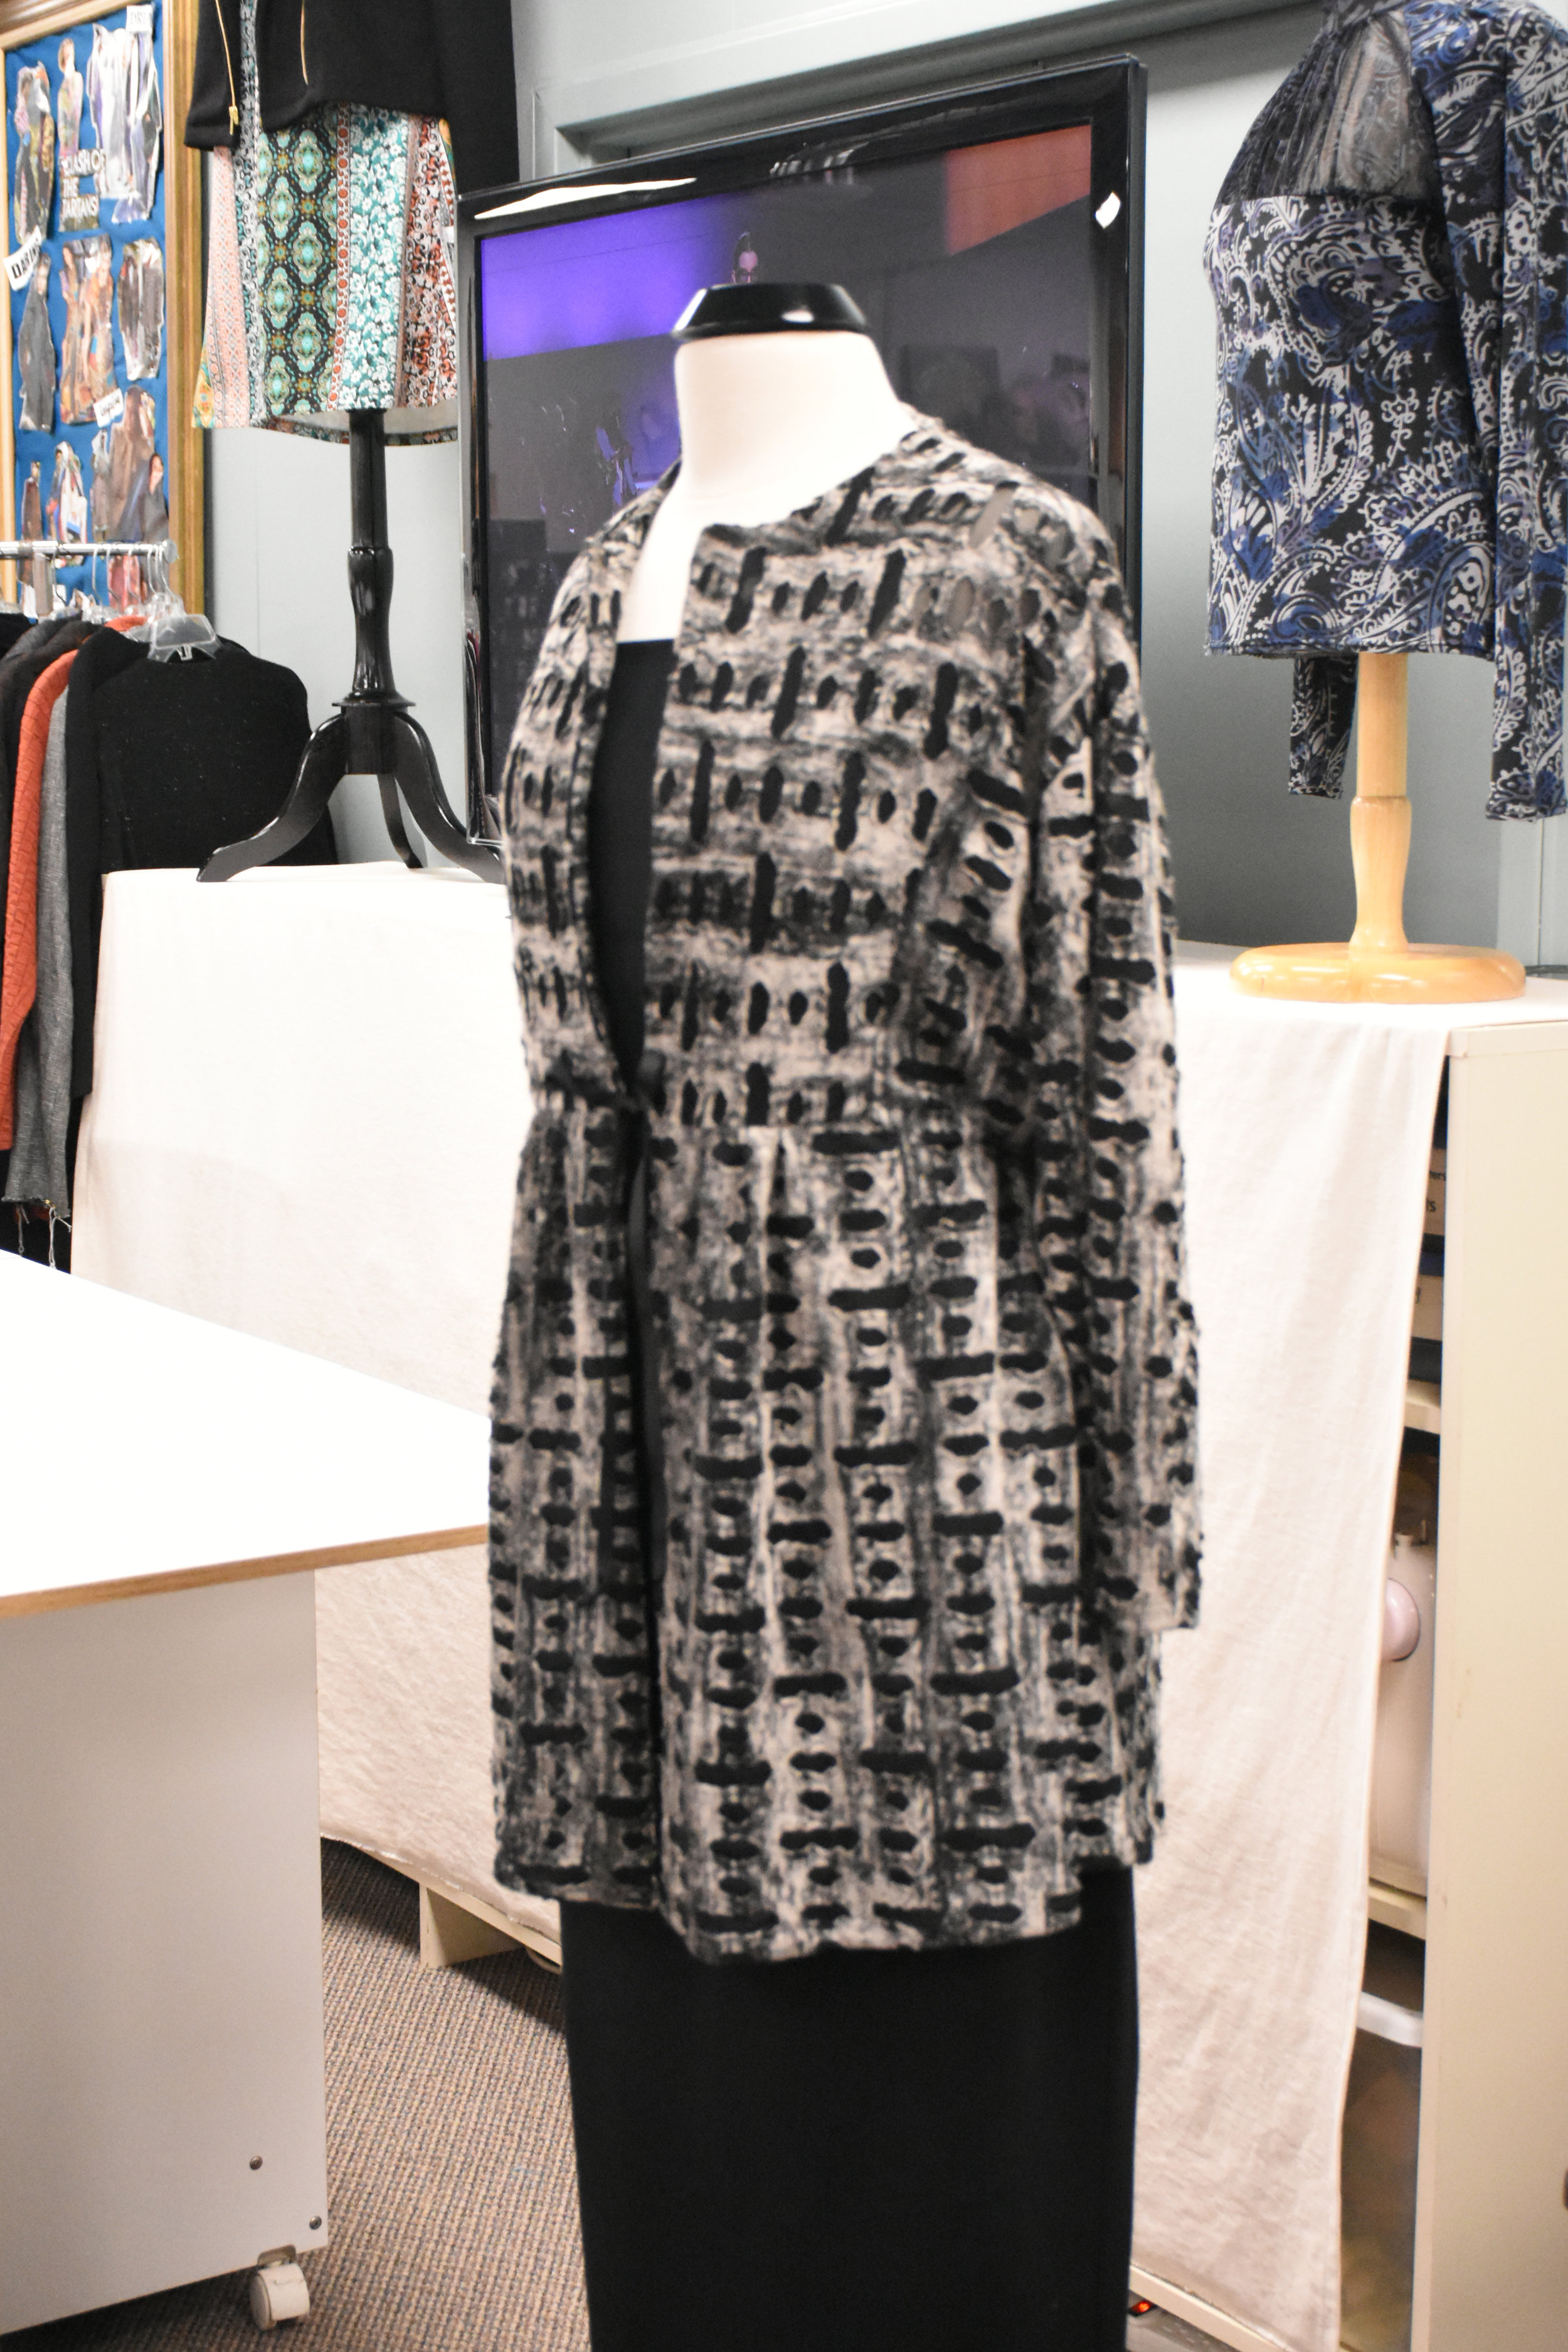 Inset Jacket Sewn in Distressed Knit Fabric - From our friends at Haberman Fabrics in Clawson